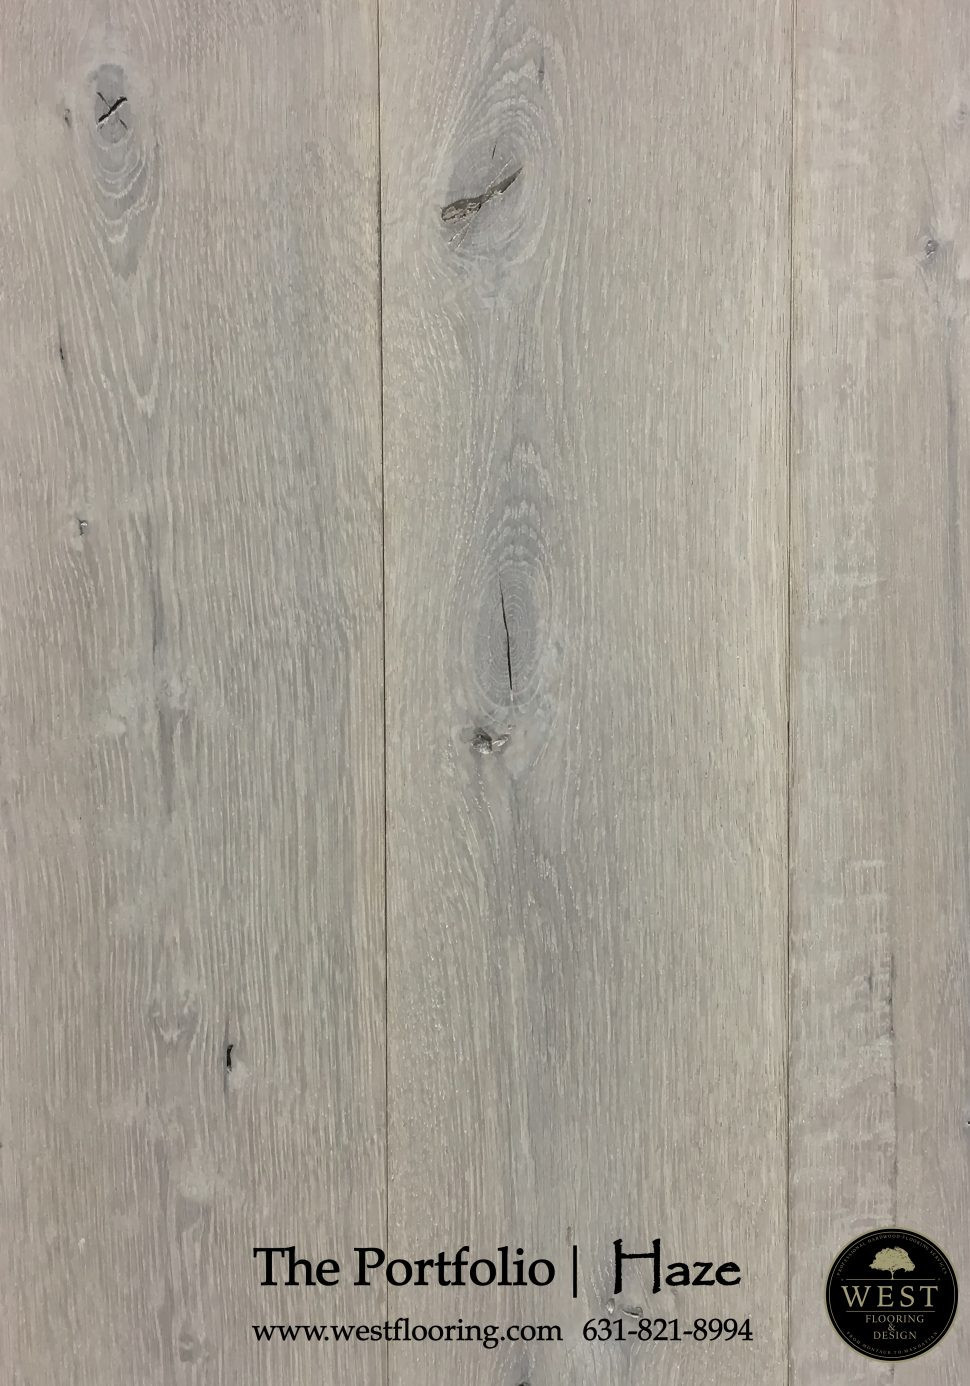 cherry hardwood flooring home depot of fake wood floors home depot best of 34 best studiofloor images on within fake wood floors home depot fresh grey hardwood floors stain home depot brown wood floor wooden